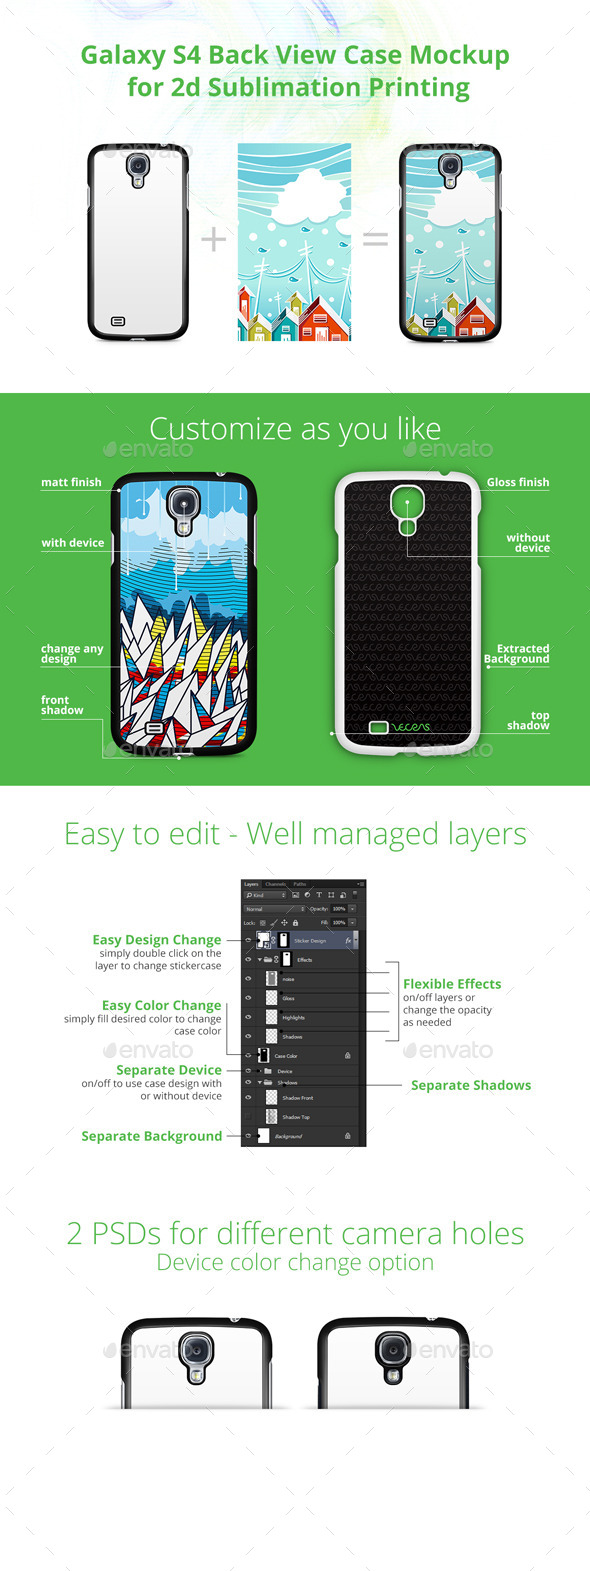 Galaxy S4 Back View Case Design Mockup for 2d Sublimation Printing